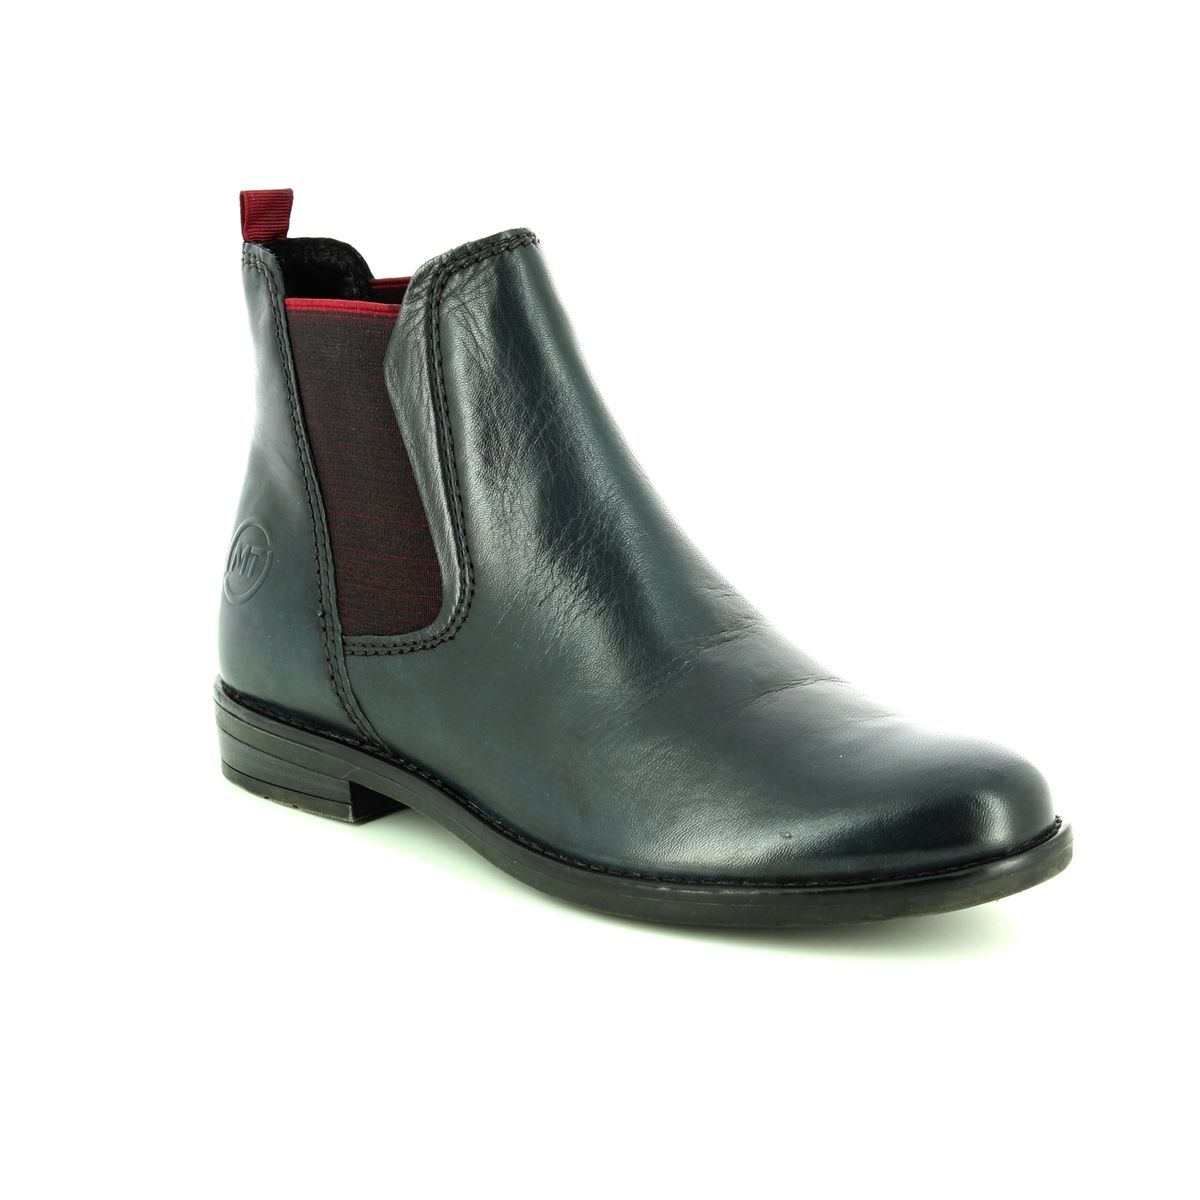 5378a2cb55d521 Marco Tozzi Chelsea Boots - Navy leather - 25366 31 892 RAPALL CHELSEA